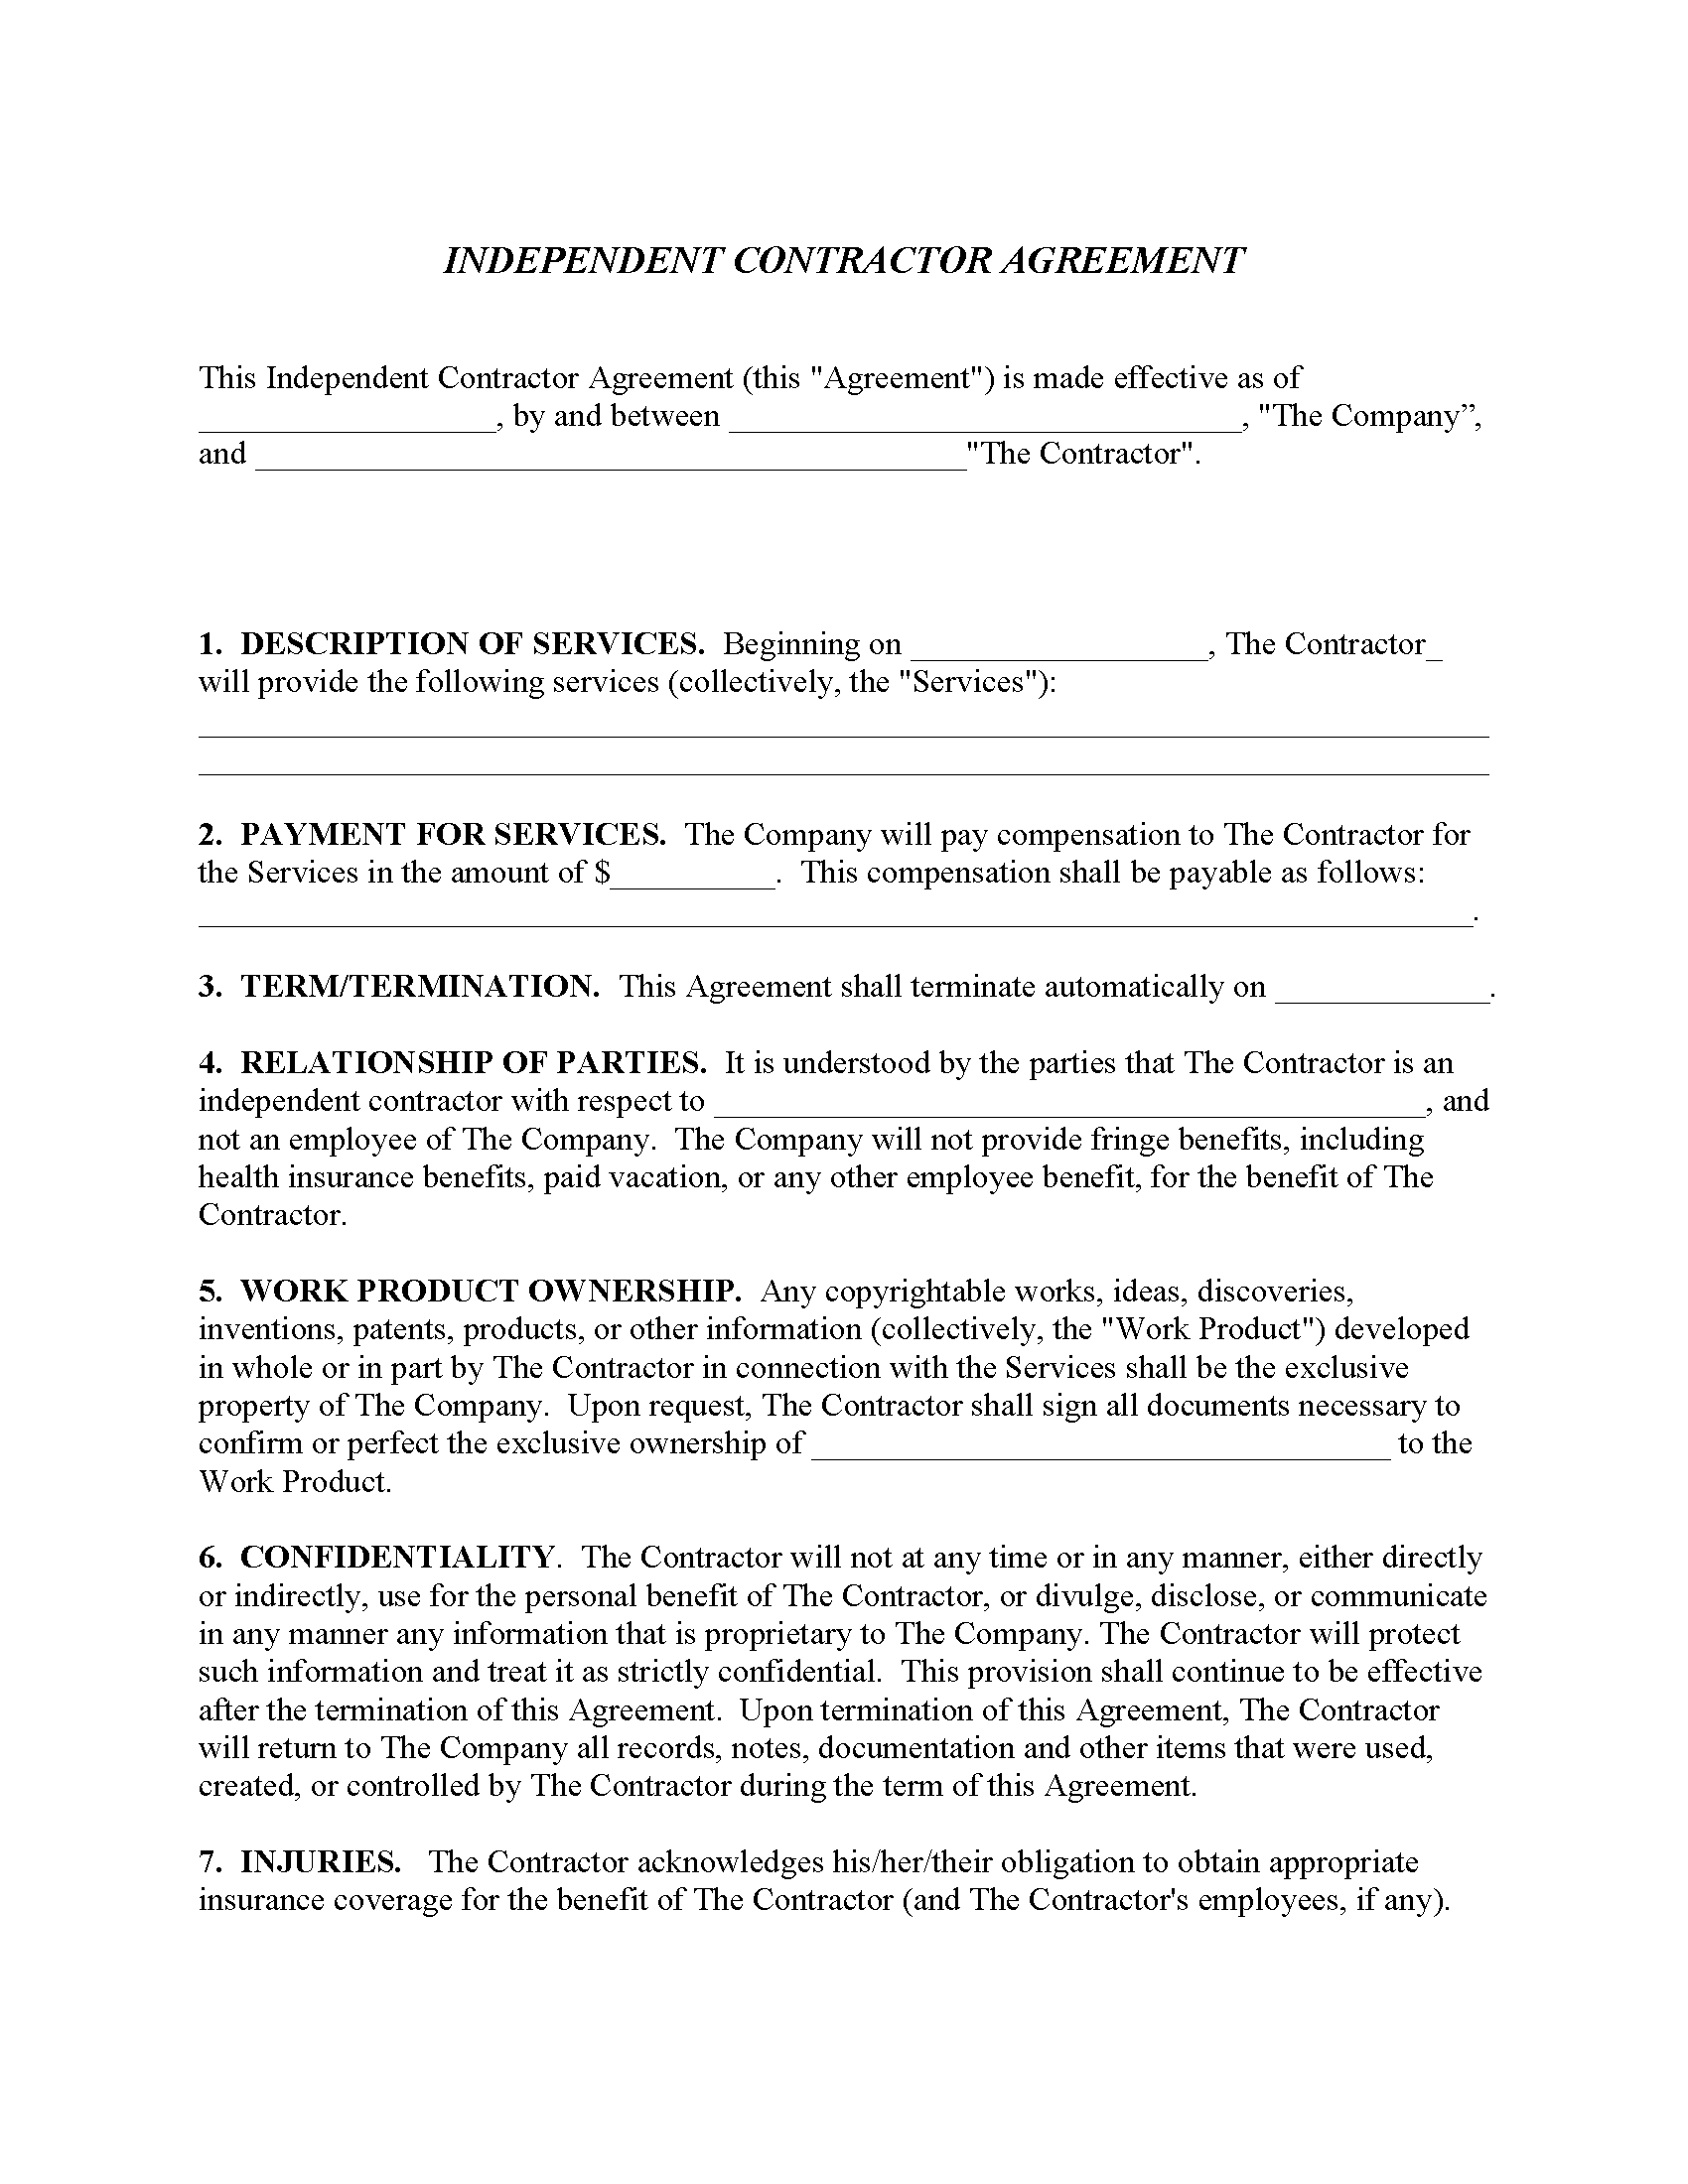 Independent Contractor Agreement Forms